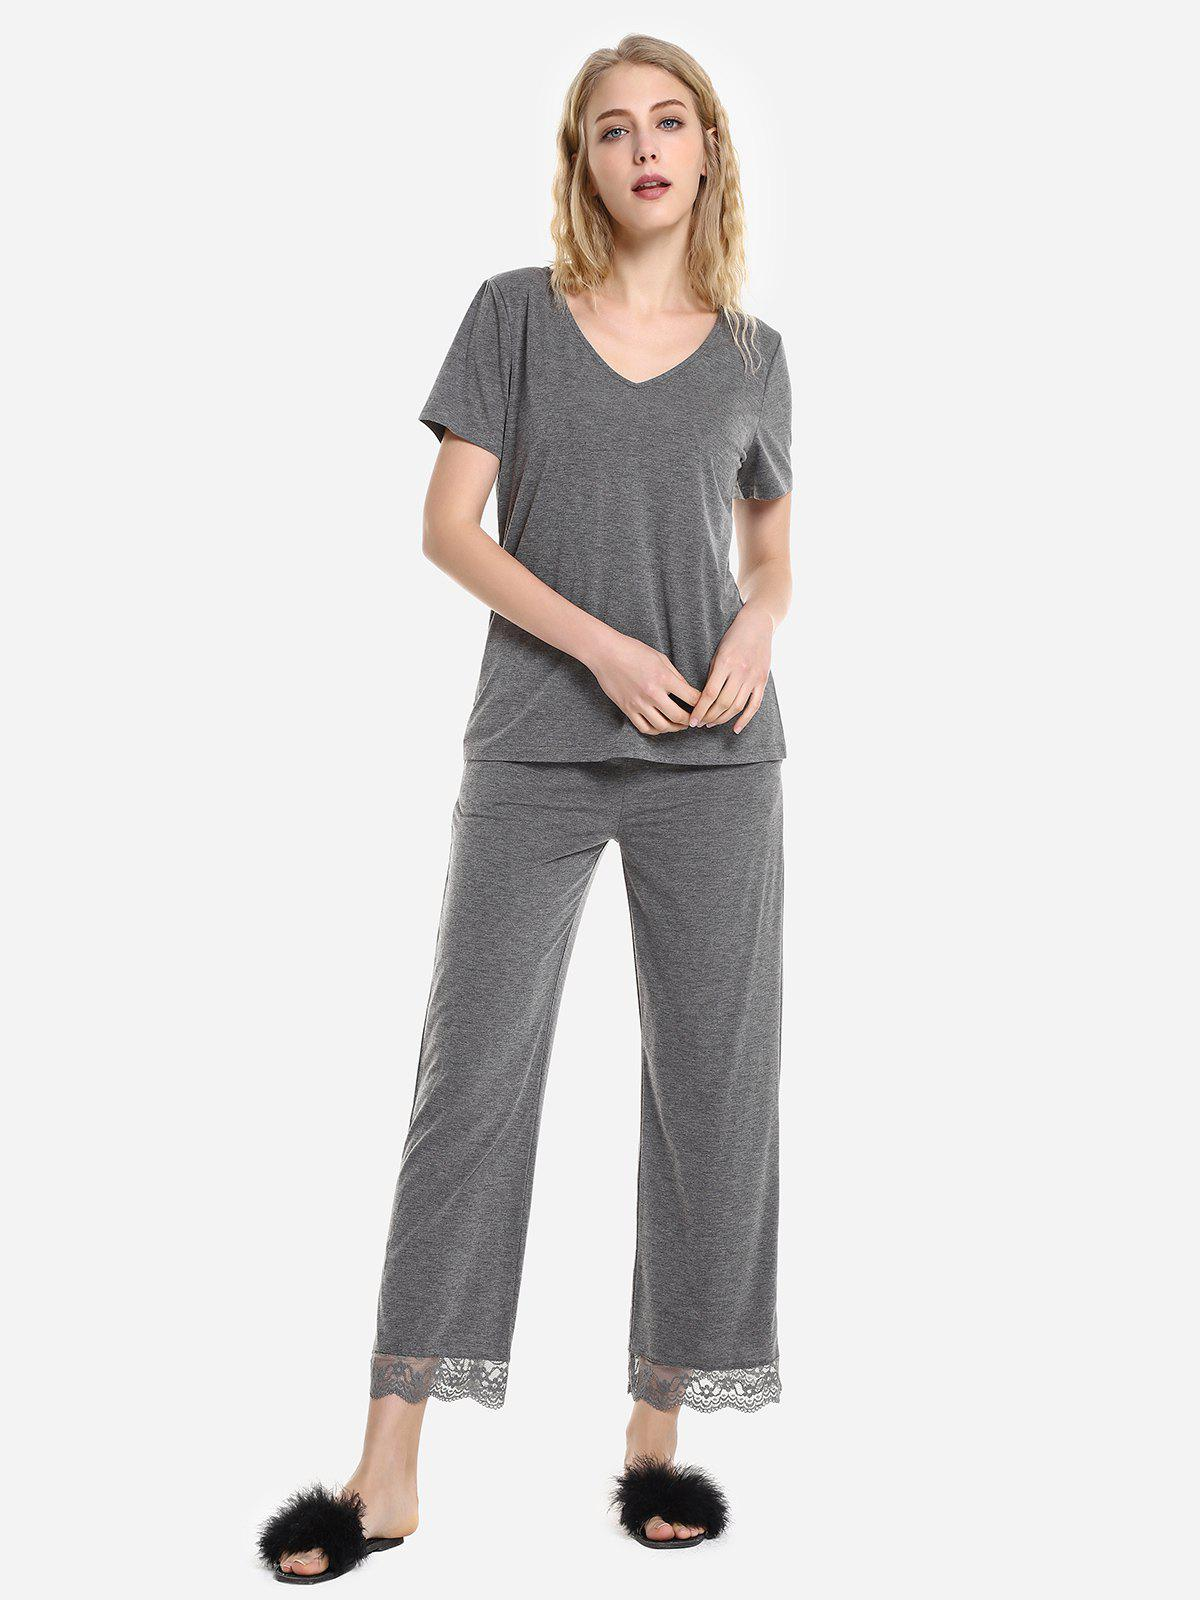 Cheap V Neck Sleepwear Short Sleeve Pajama Set